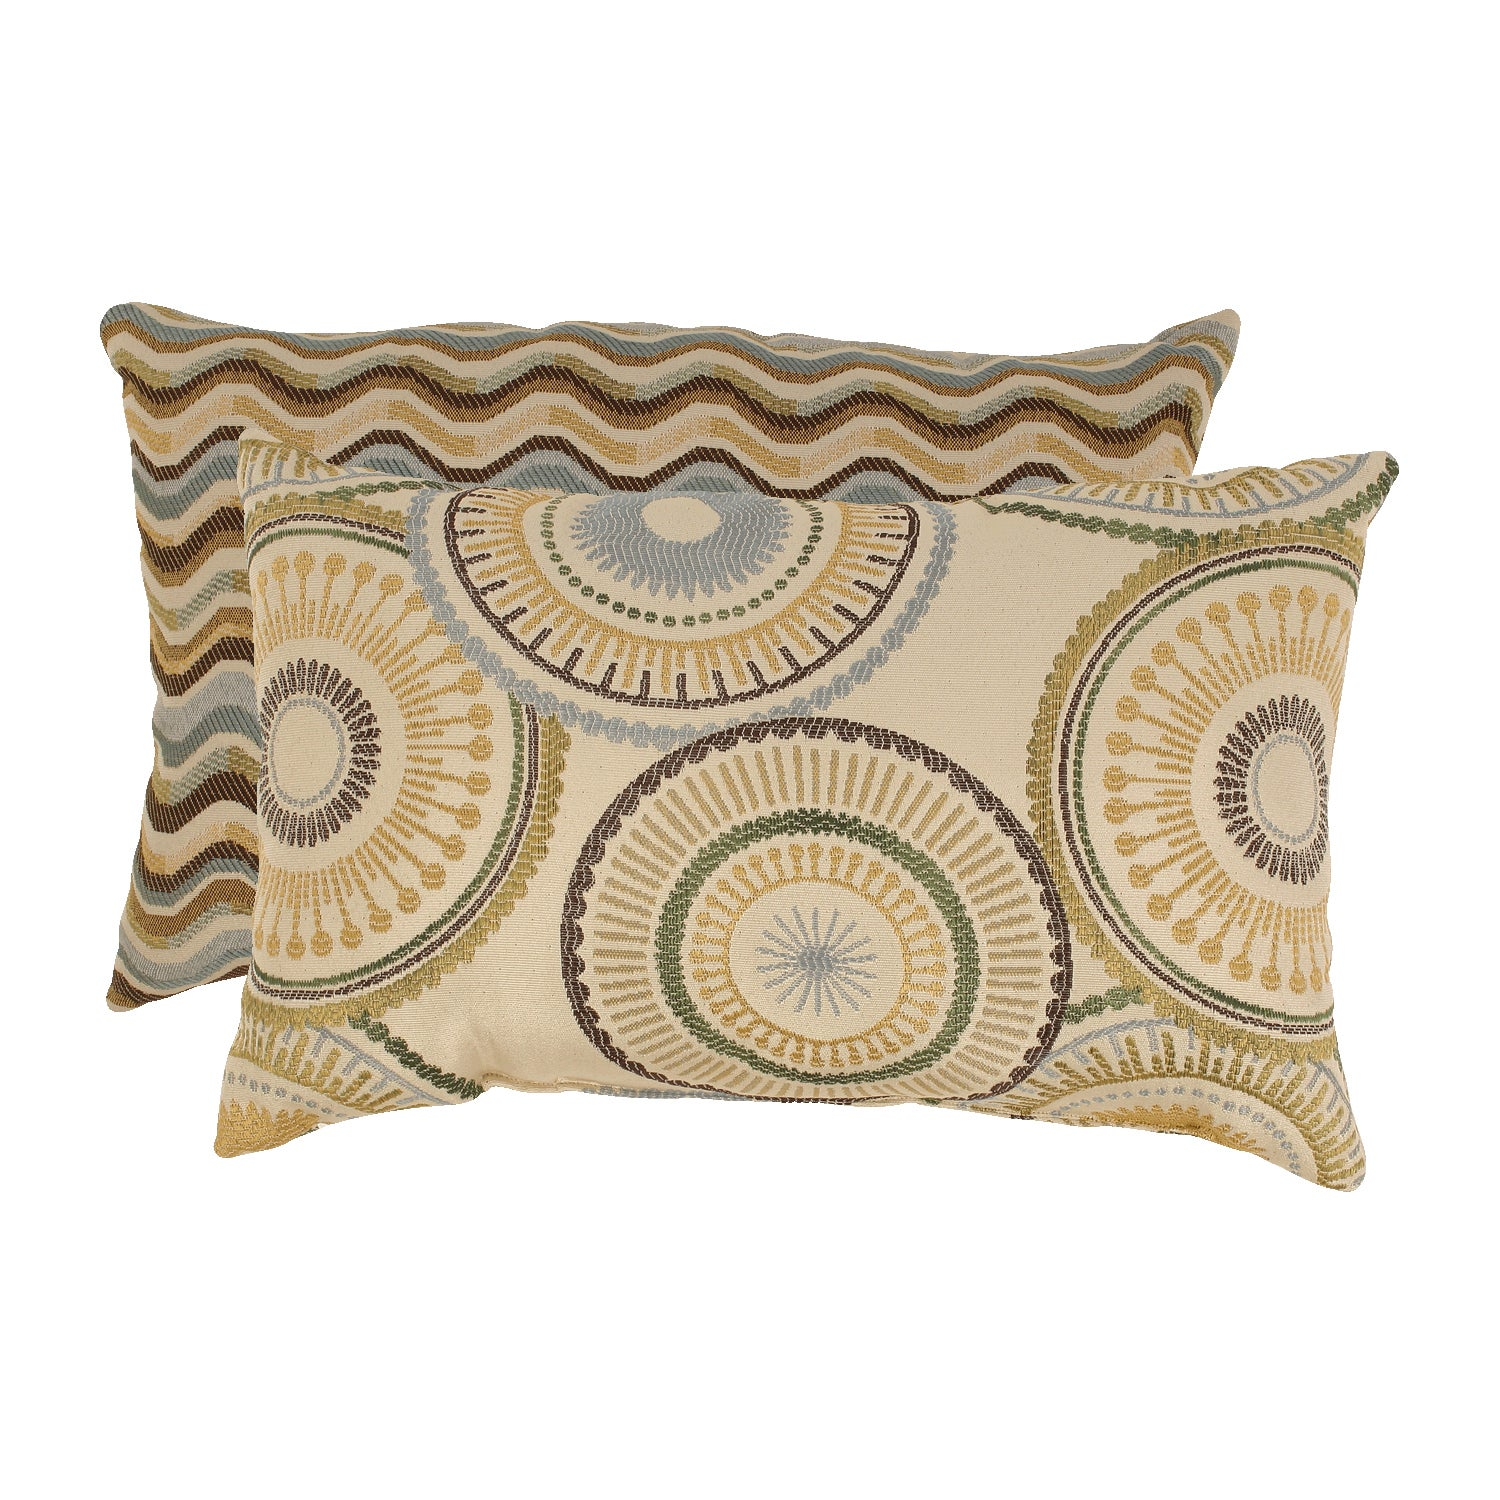 'Riley' and 'Wave' Rectangular Throw Pillows (Set of 2)